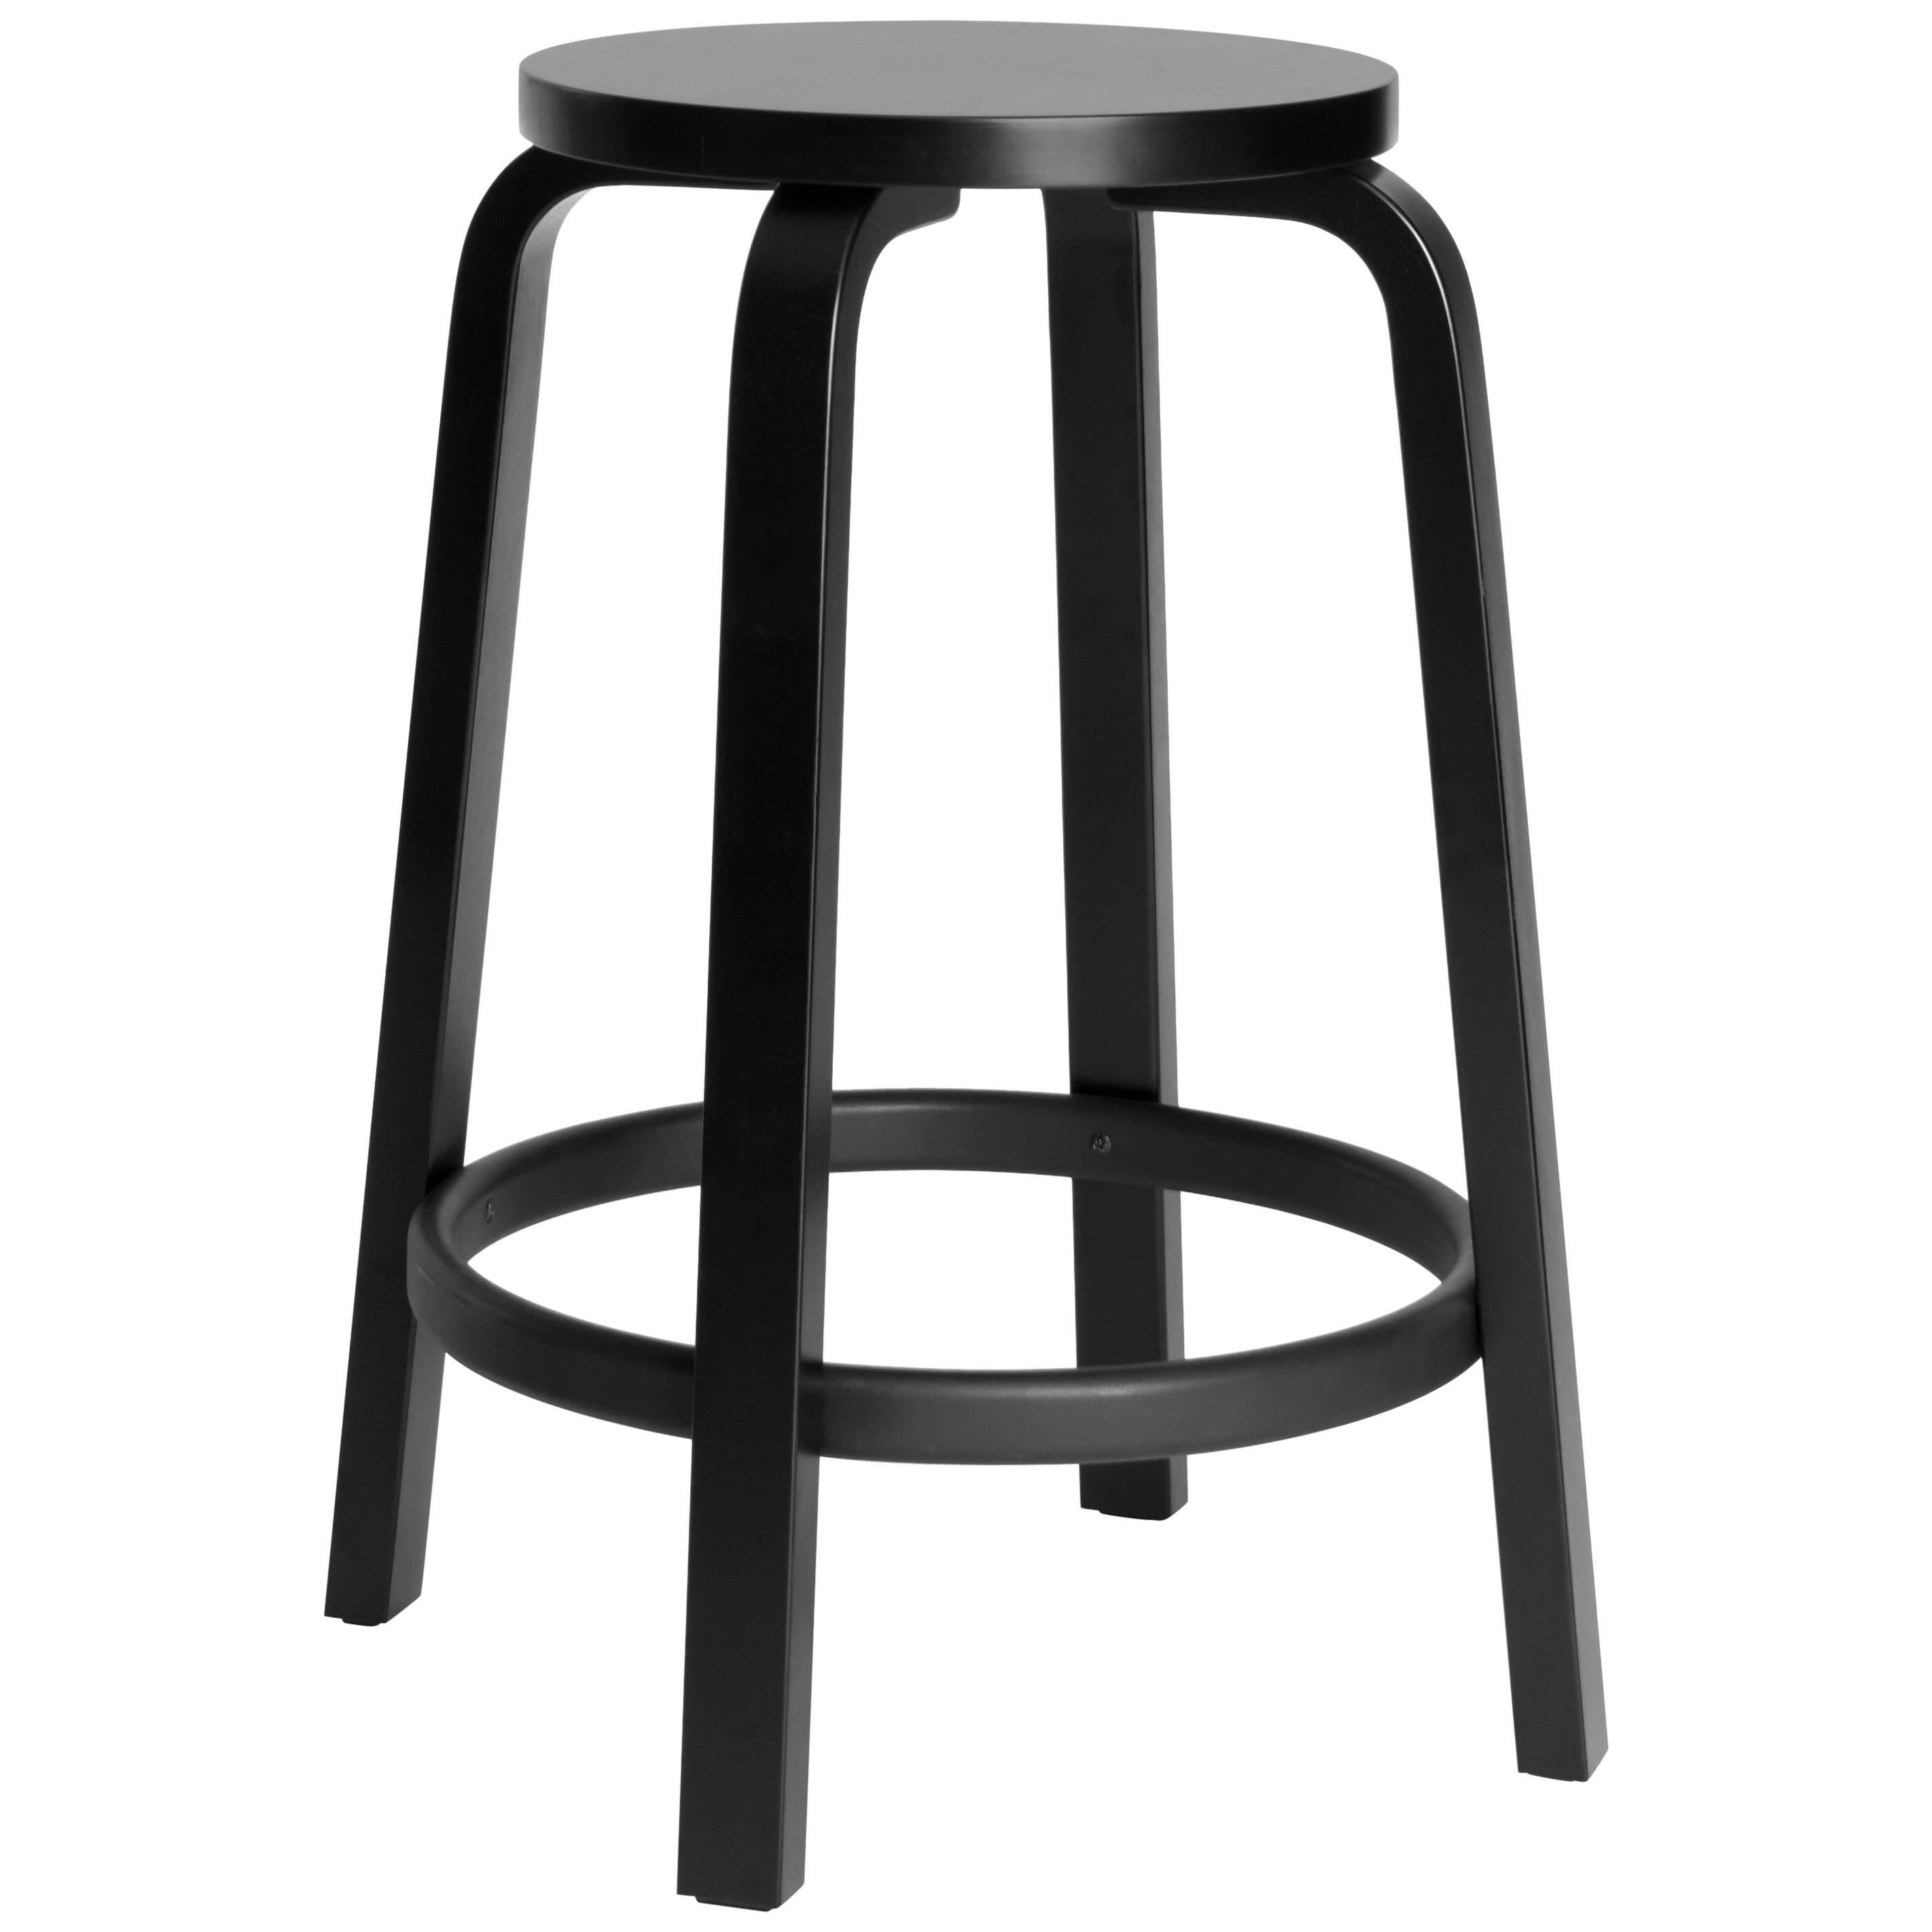 Marvelous Authentic High Stool 64 Counter Stool In Black By Alvar Aalto U0026 Artek For  Sale